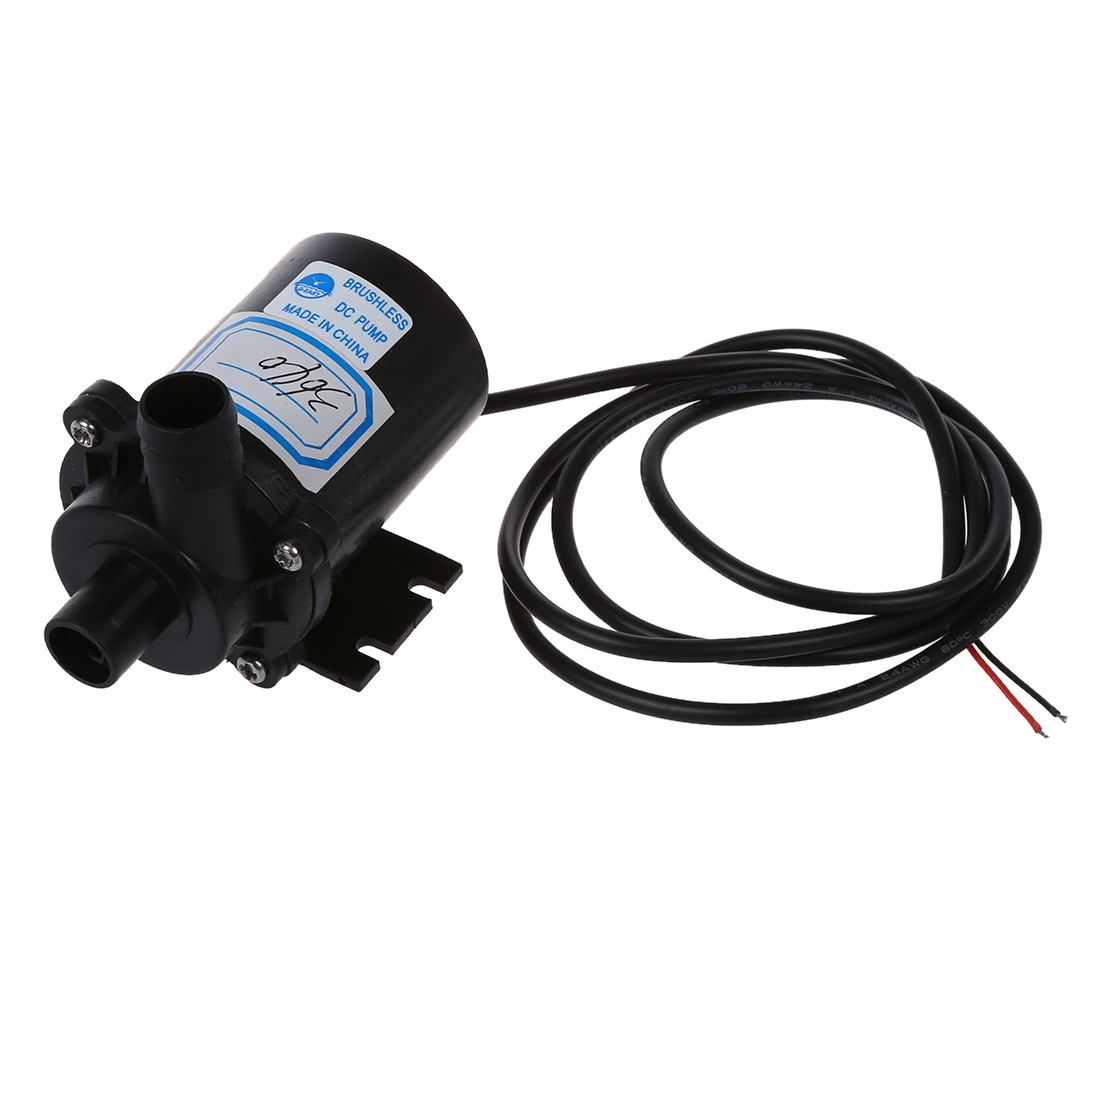 36V 640mA DC Fountain Submersible Brushless Motor Water Pump 800LPH